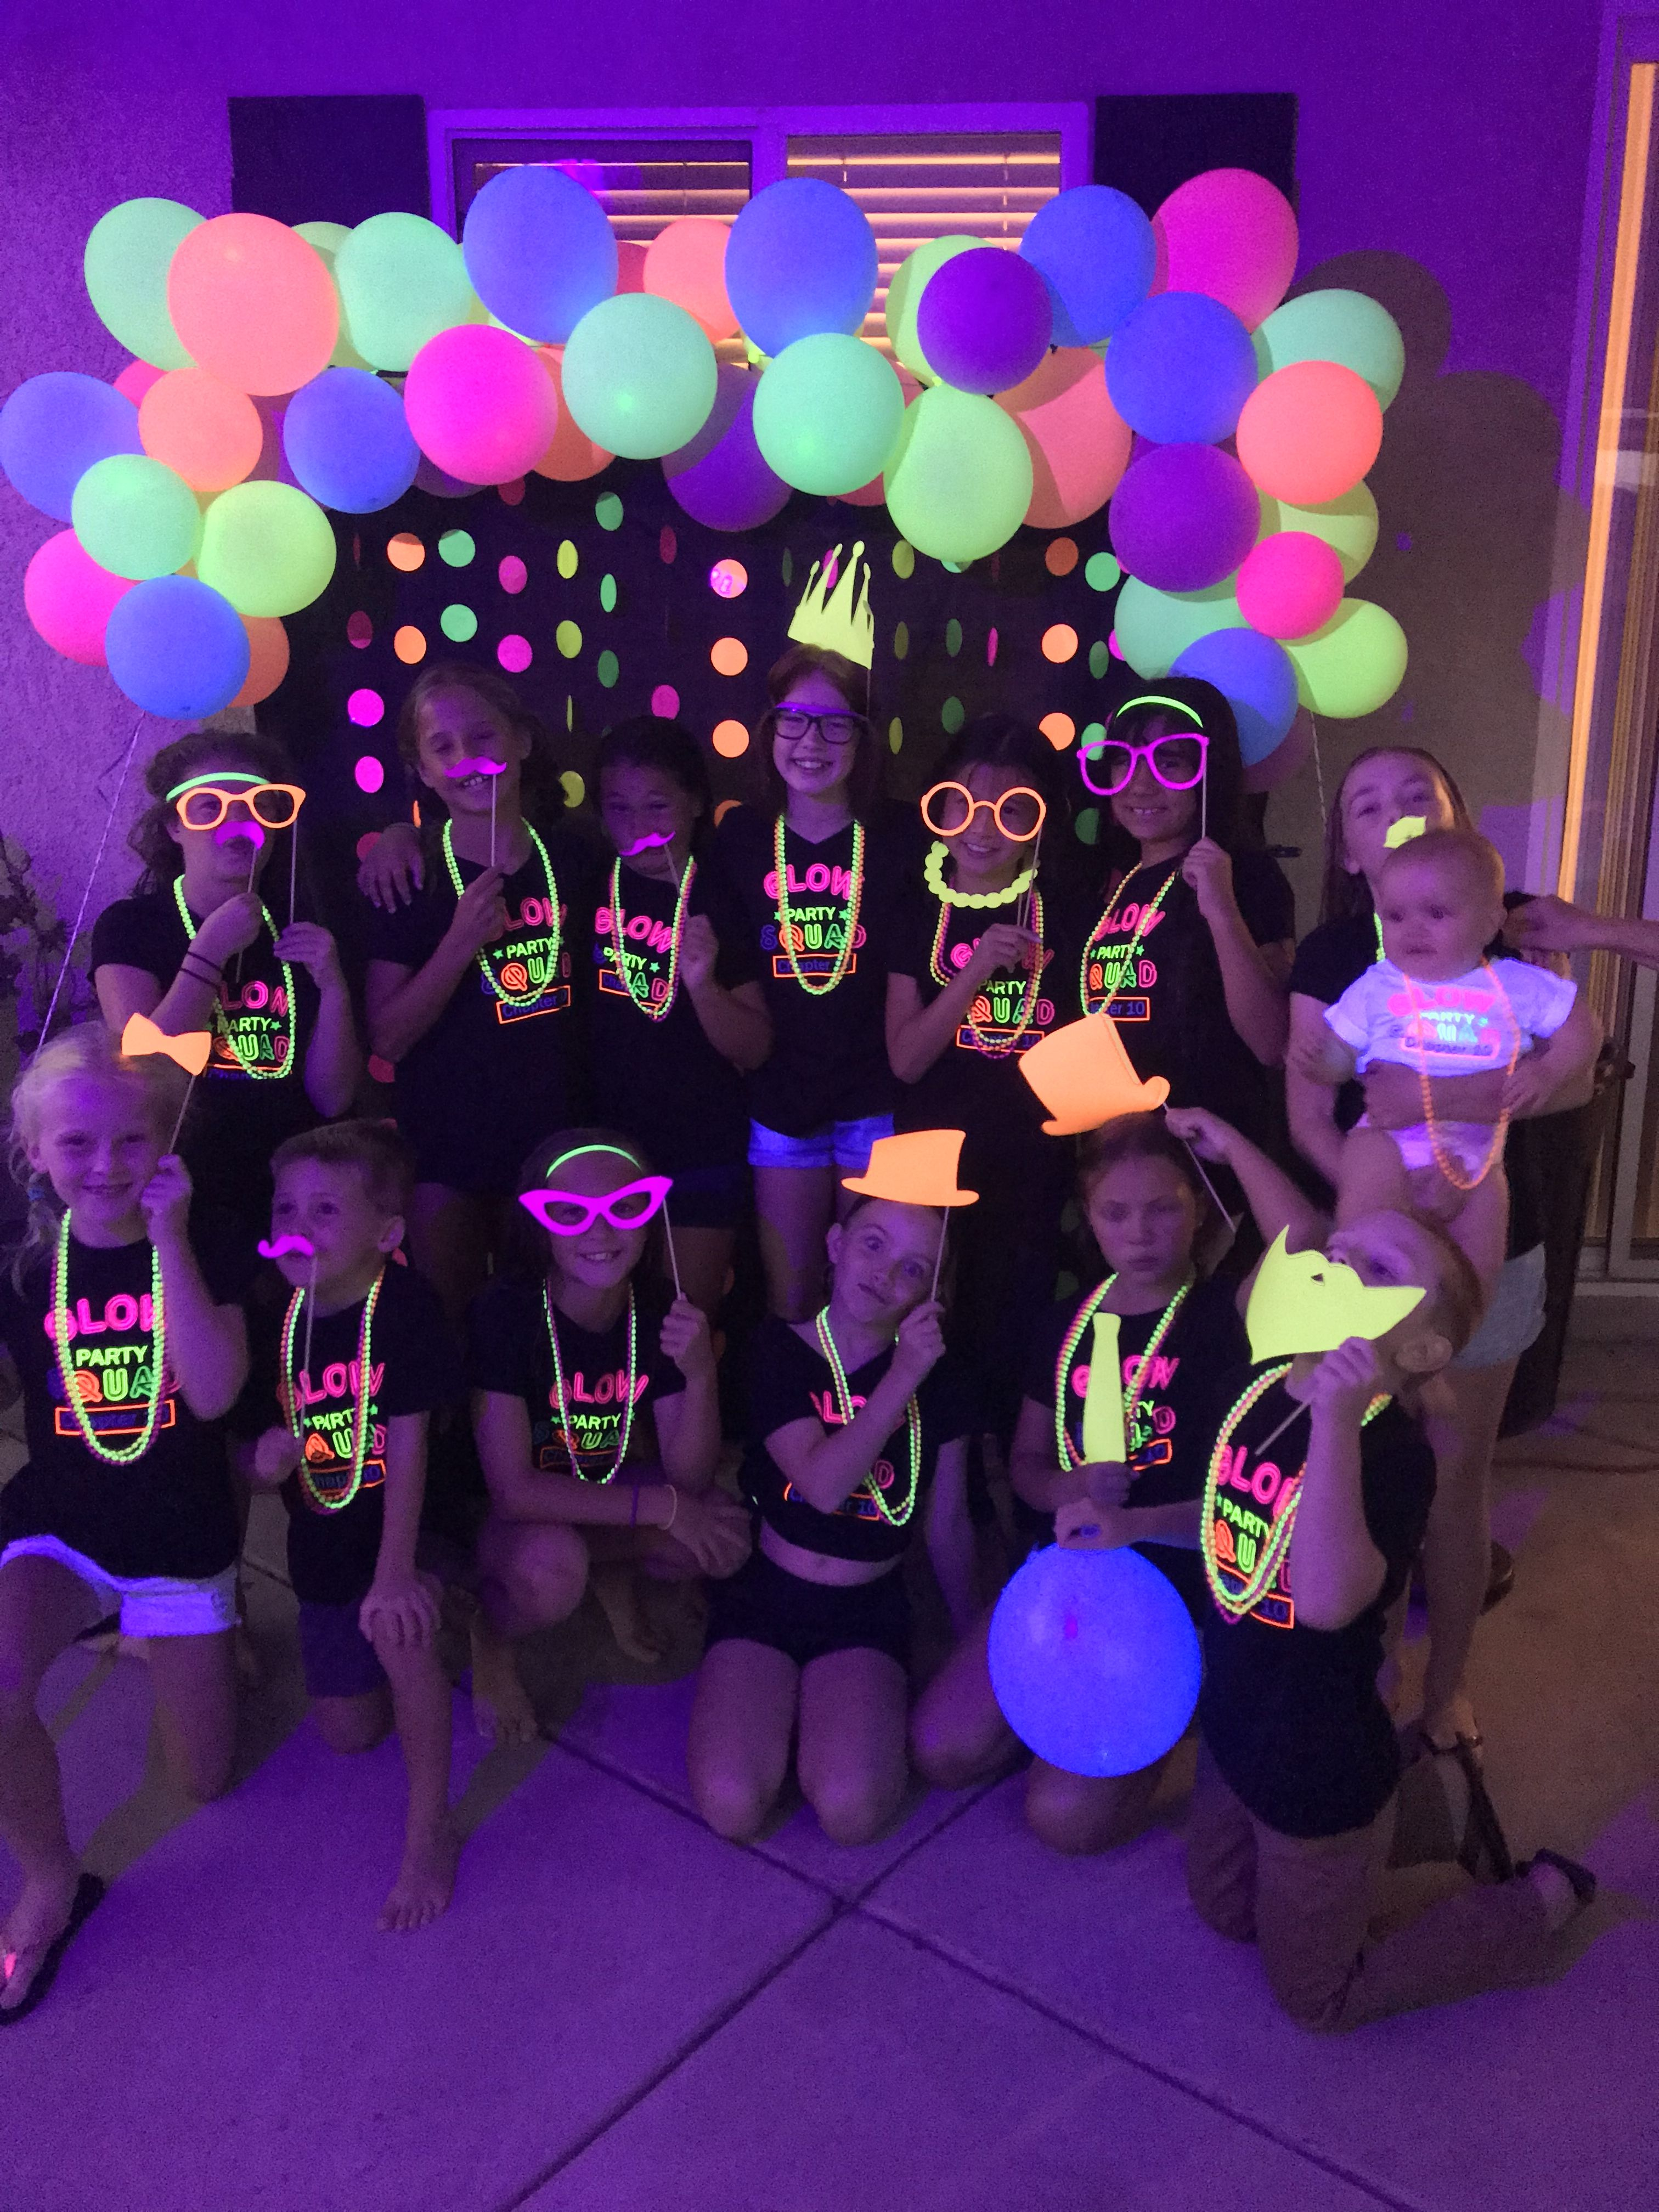 Pin By Tara Parrish On Party Ideas In 2019 Glow